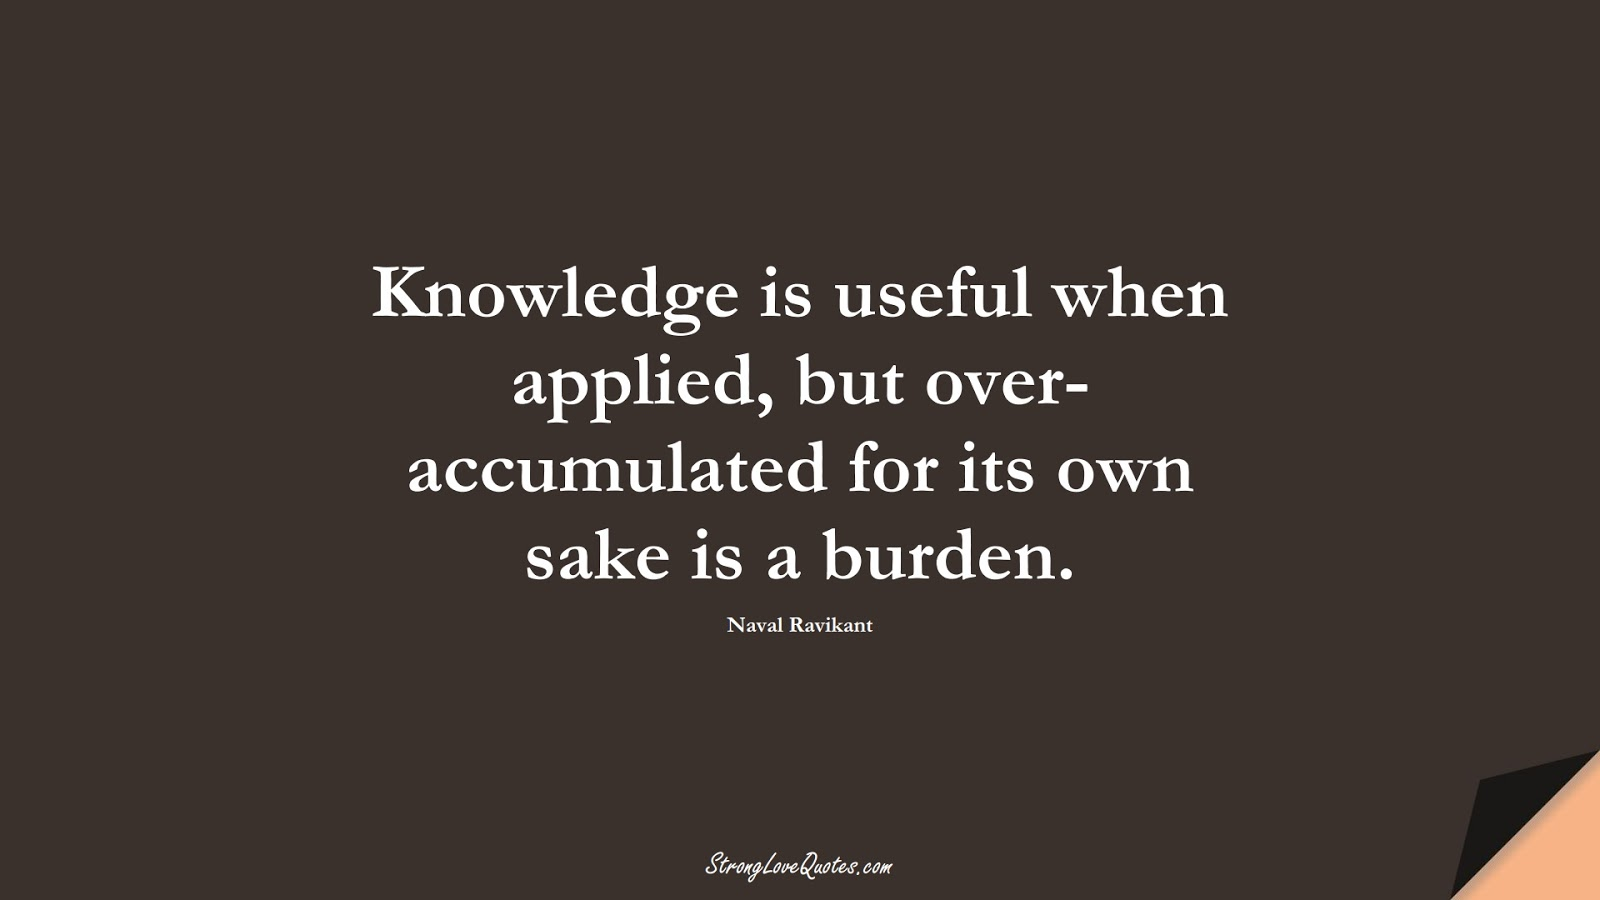 Knowledge is useful when applied, but over-accumulated for its own sake is a burden. (Naval Ravikant);  #KnowledgeQuotes